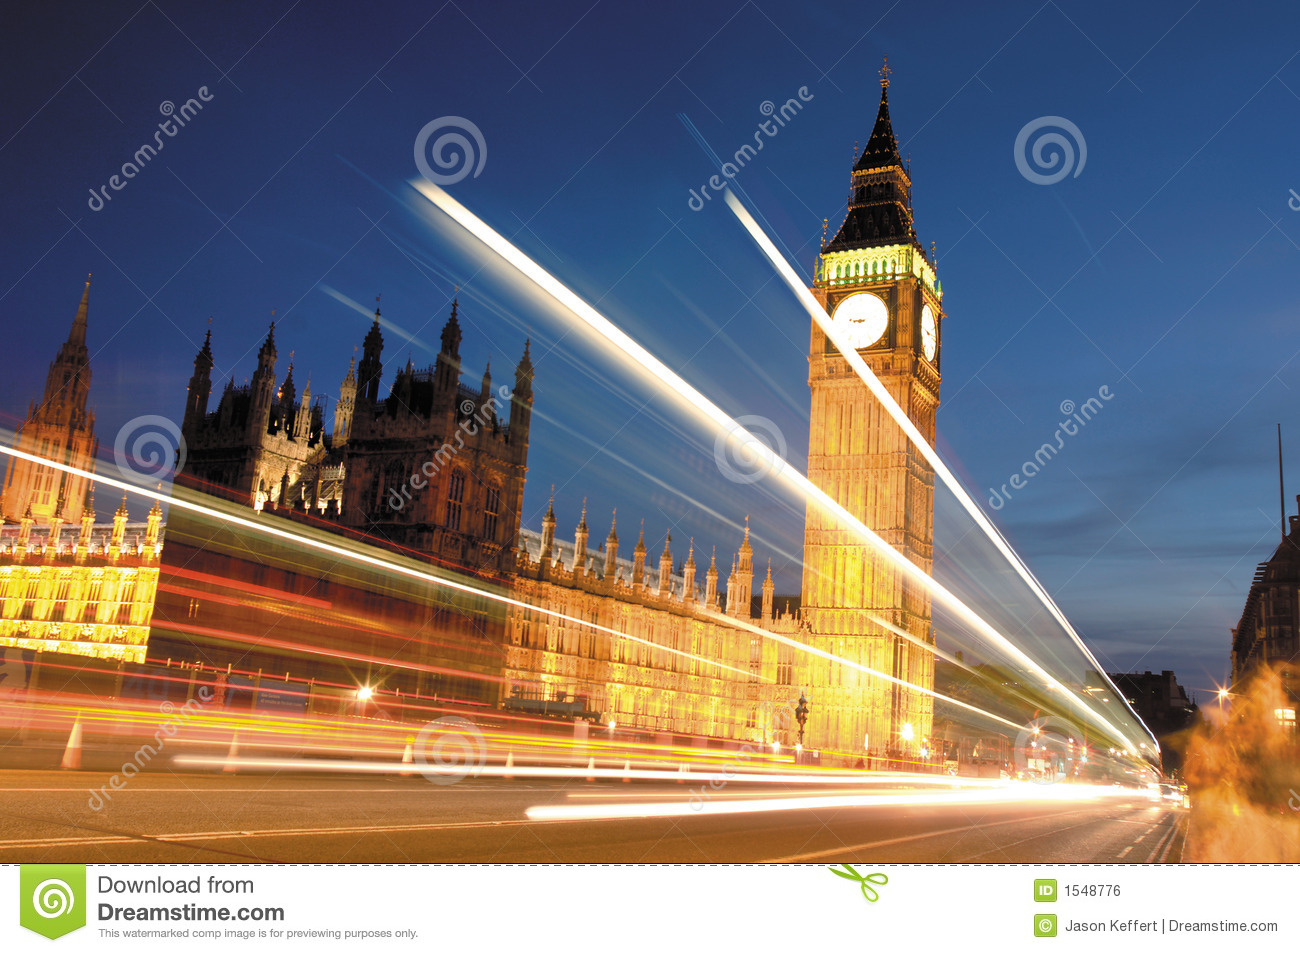 Free Download Royalty Free Images London UK